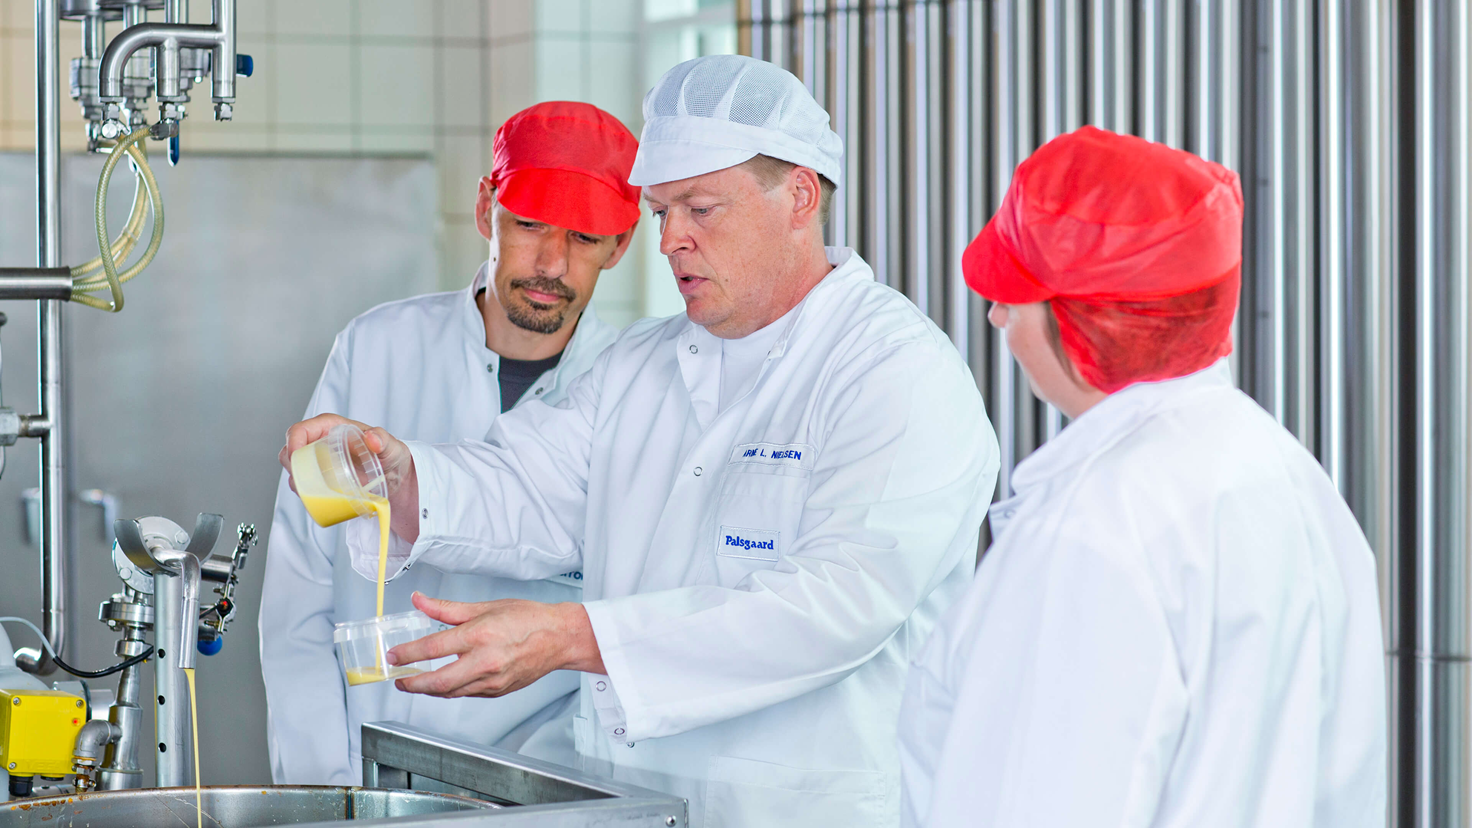 Palsgaard Sharing Knowledge In Its Margarine Application Centre